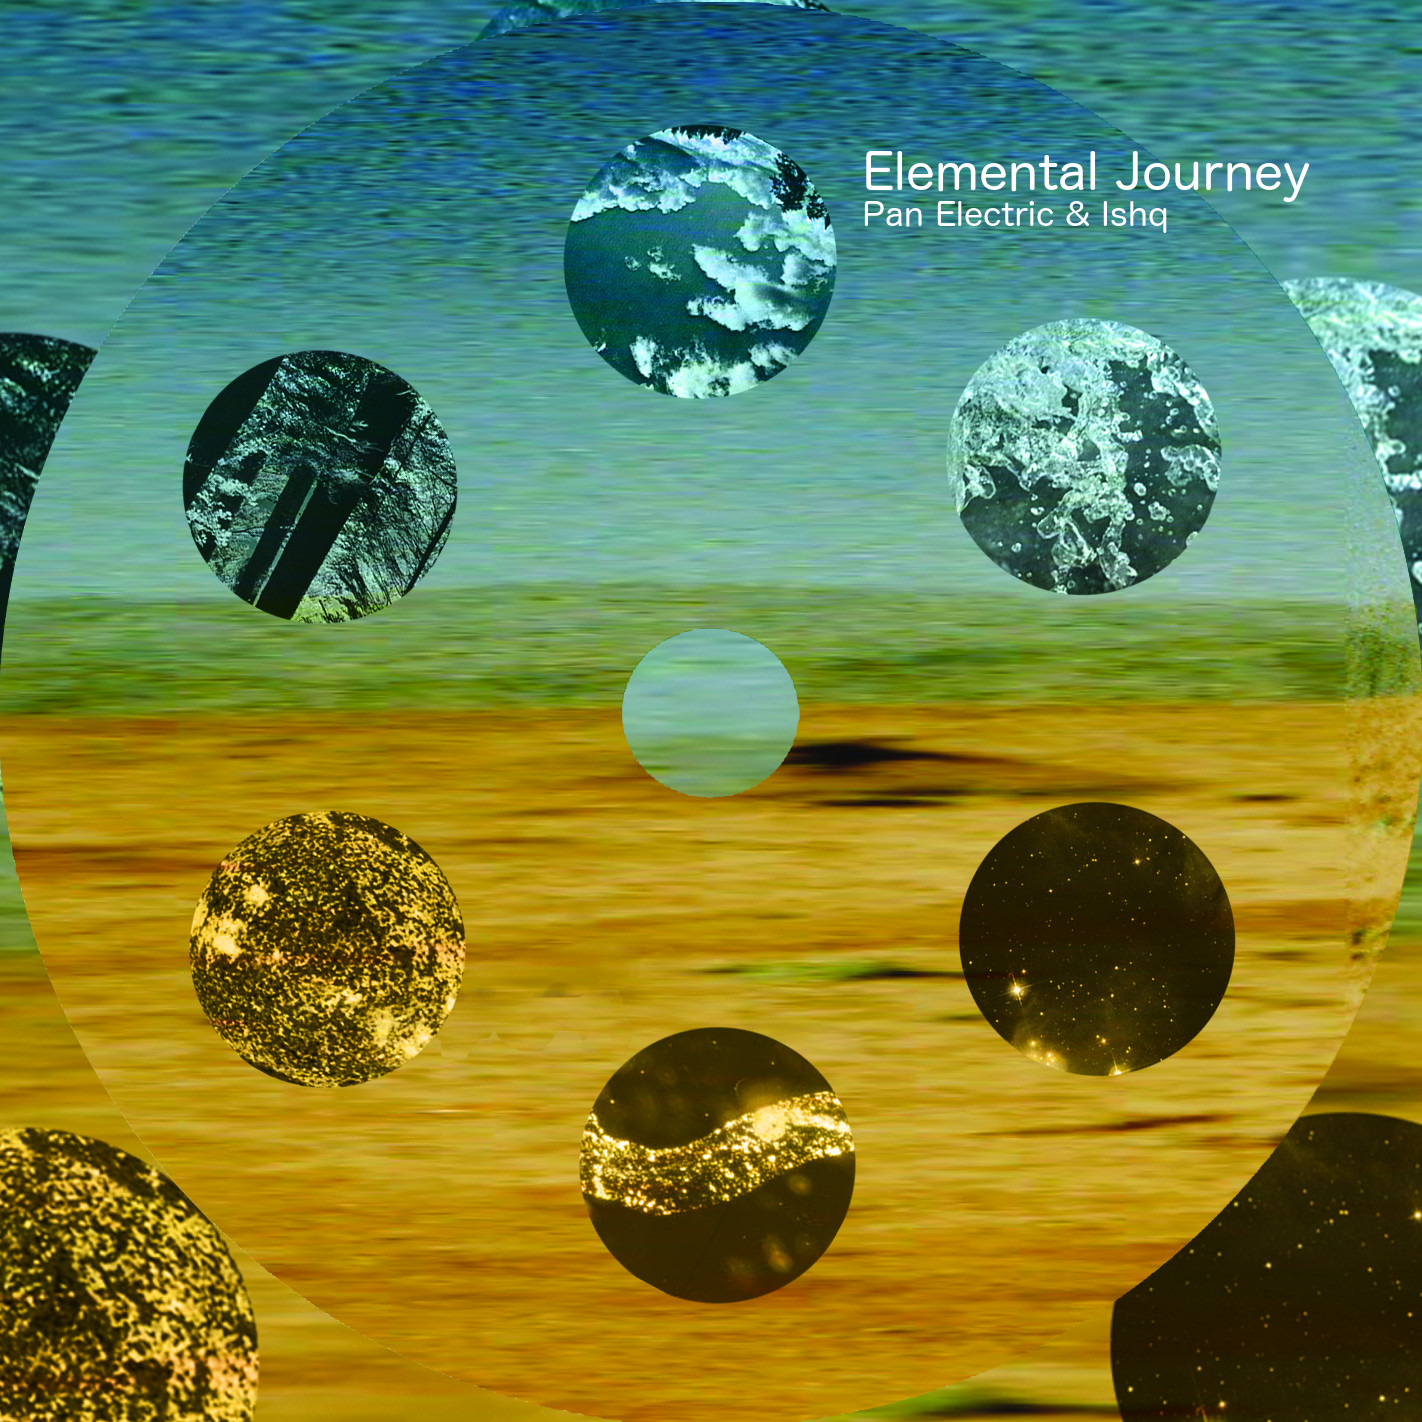 ElementalJourney-rerelease-coverart-02-90